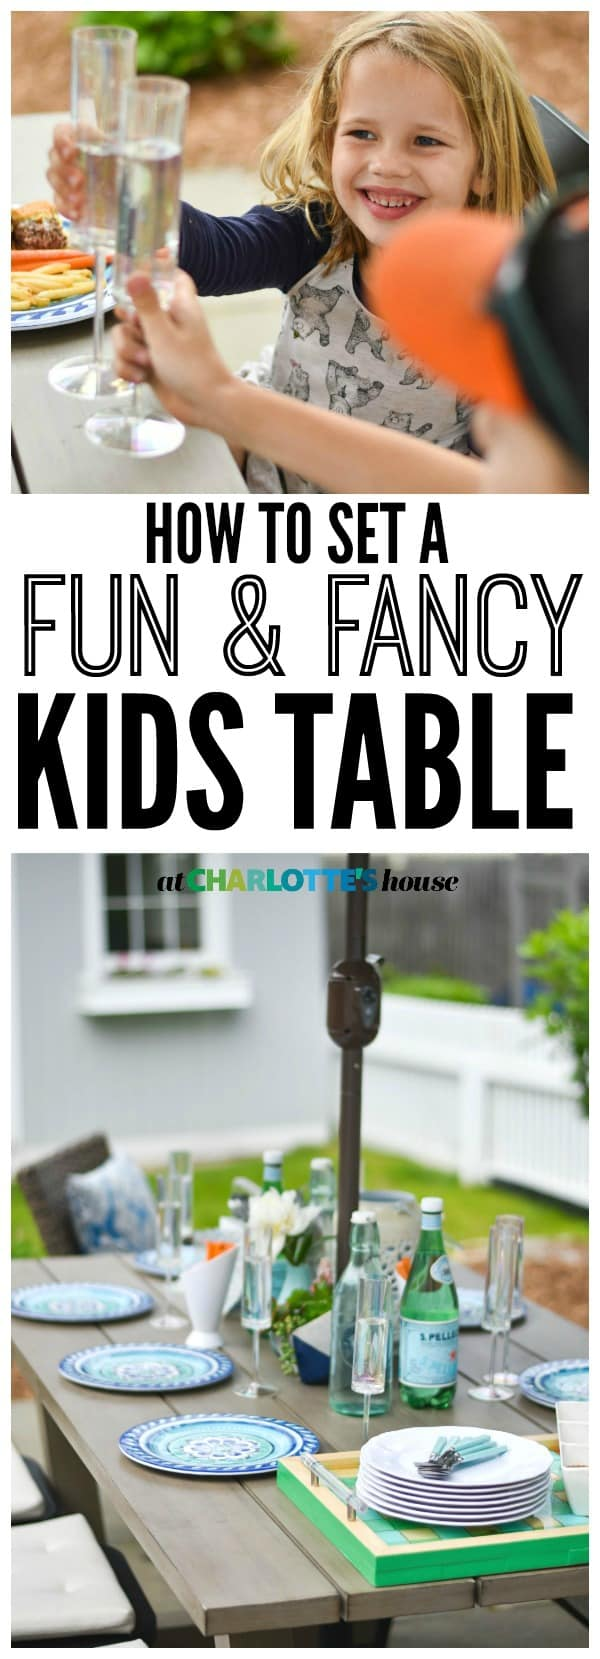 Setting a fun and fancy kids table for summer